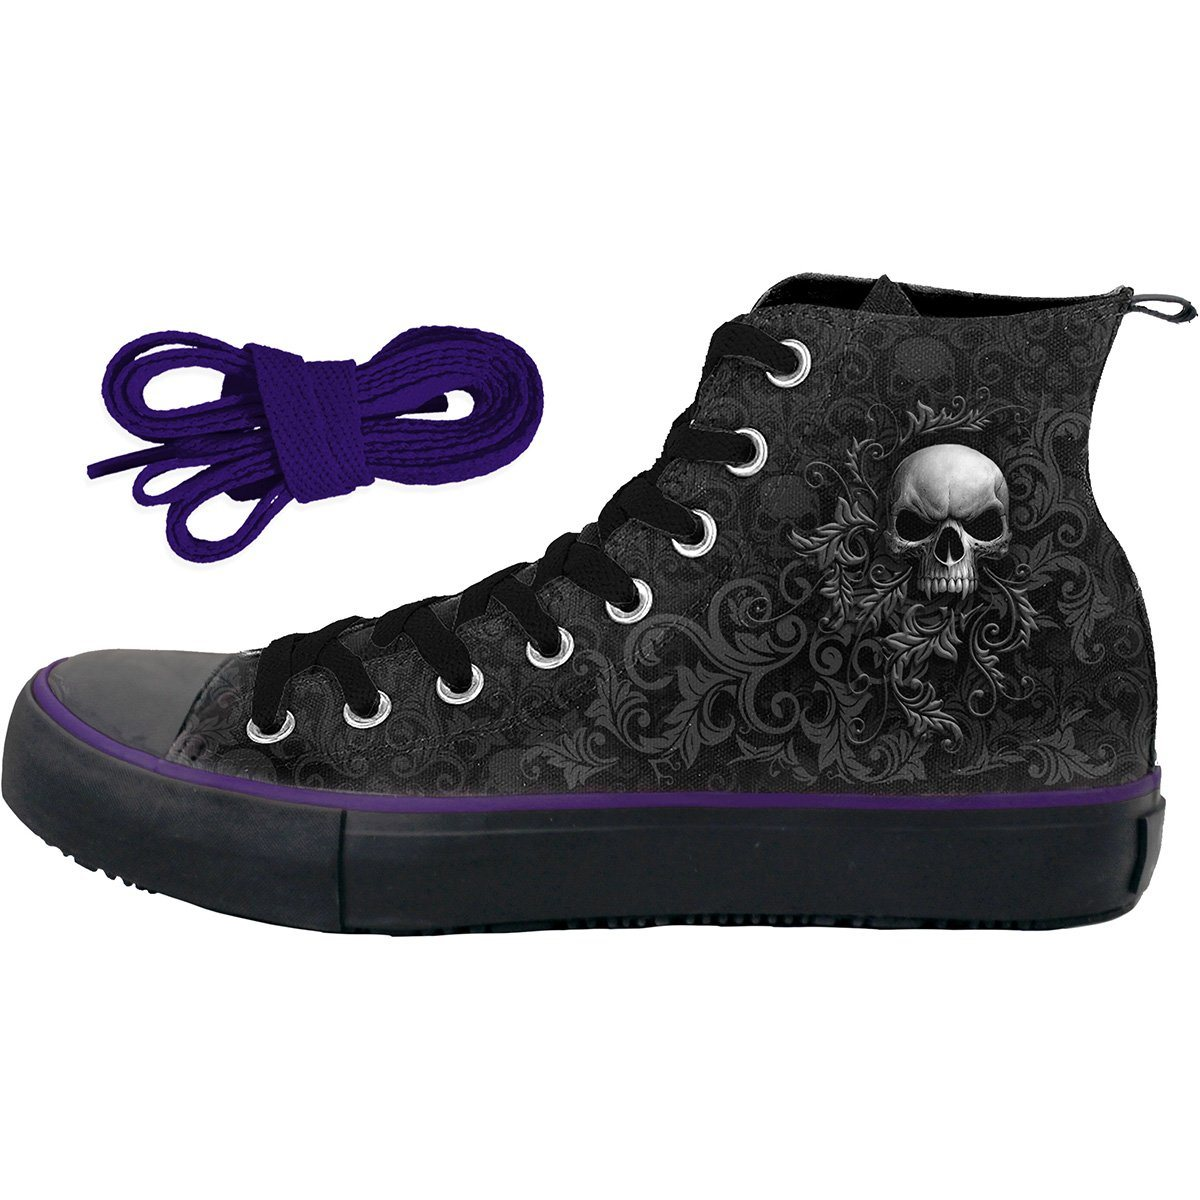 Scrolling Skulls Women's High-Top Sneakers - Rebels Depot